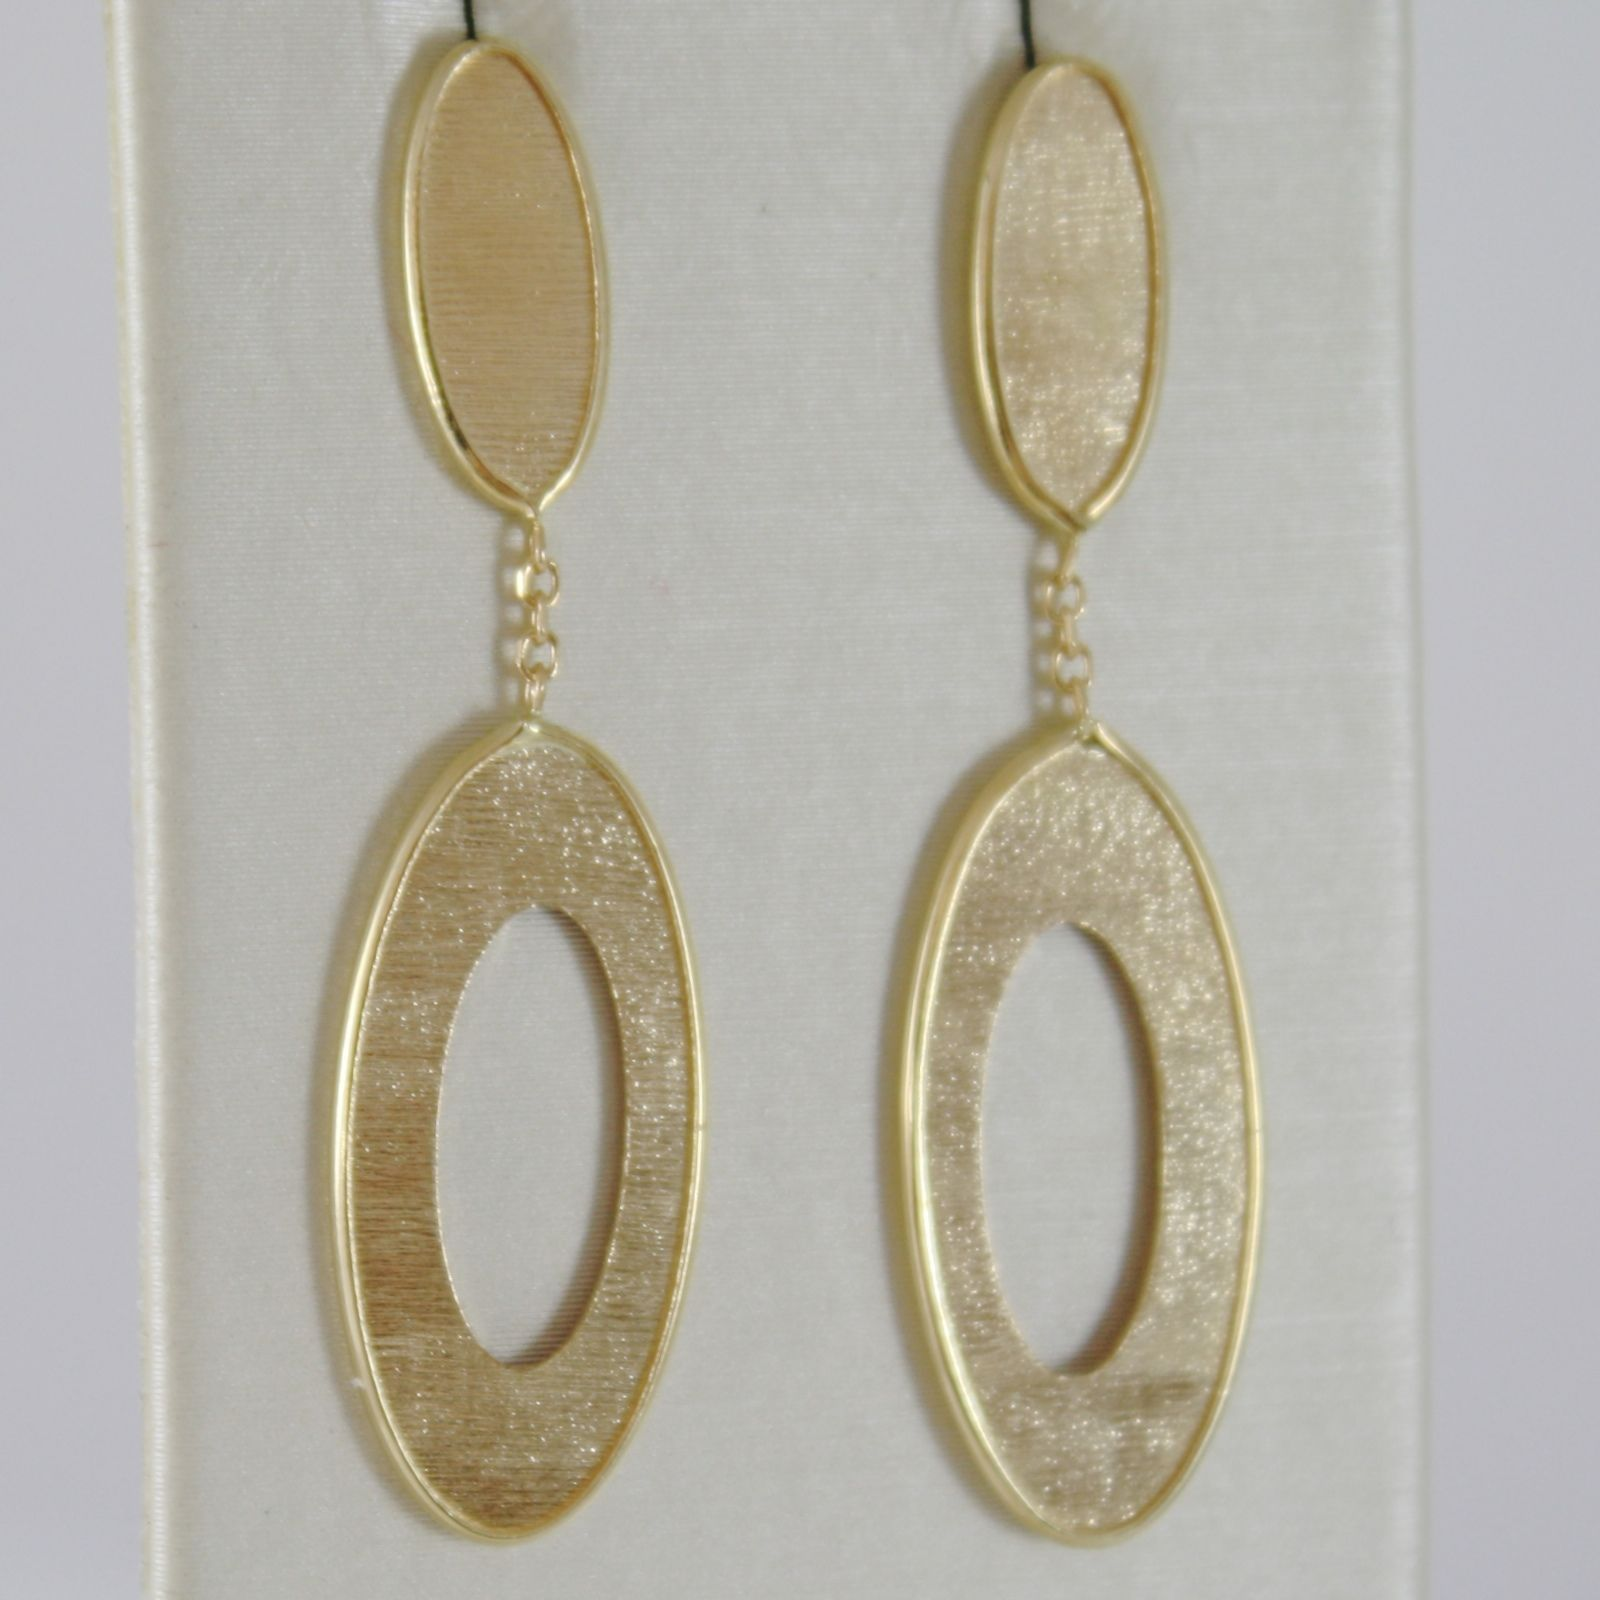 18K YELLOW GOLD PENDANT OVAL EARRINGS FINELY WORKED STRIPES DOUBLE MADE IN ITALY